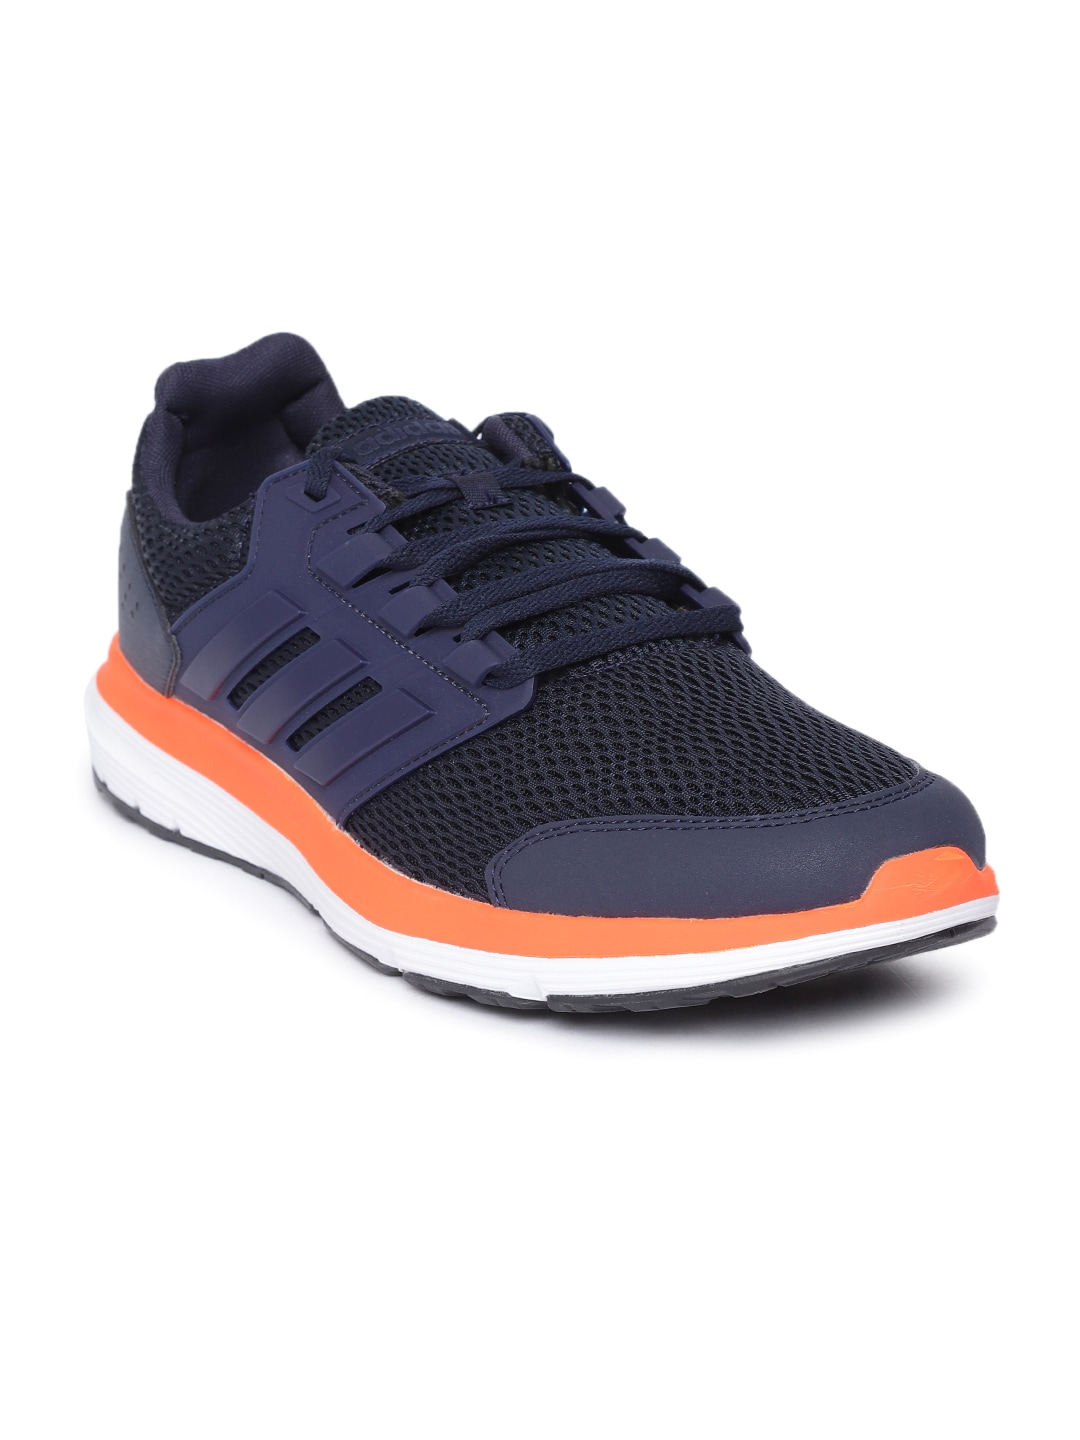 b1d95e5dc adidas - Exclusive adidas Online Store in India at Myntra